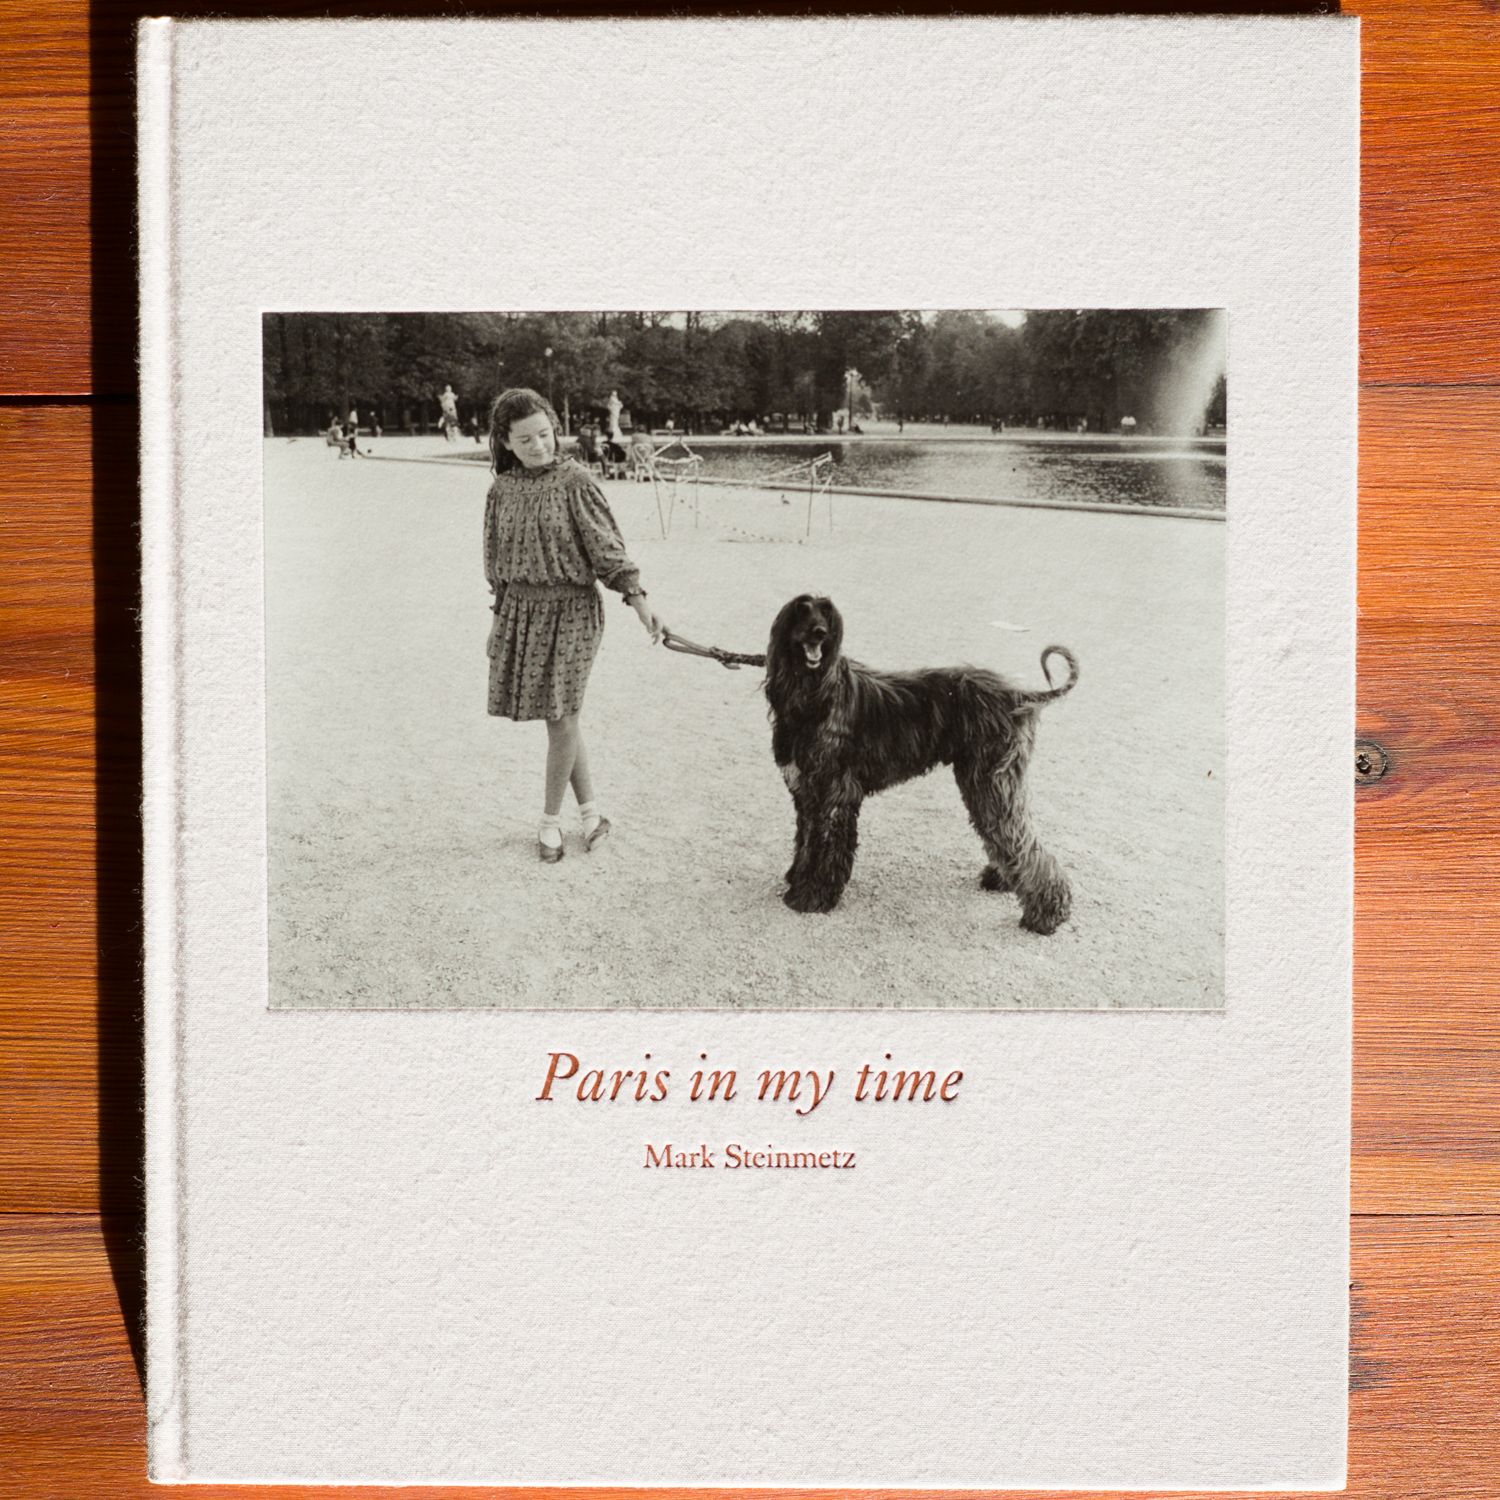 Paris in my time (2013)